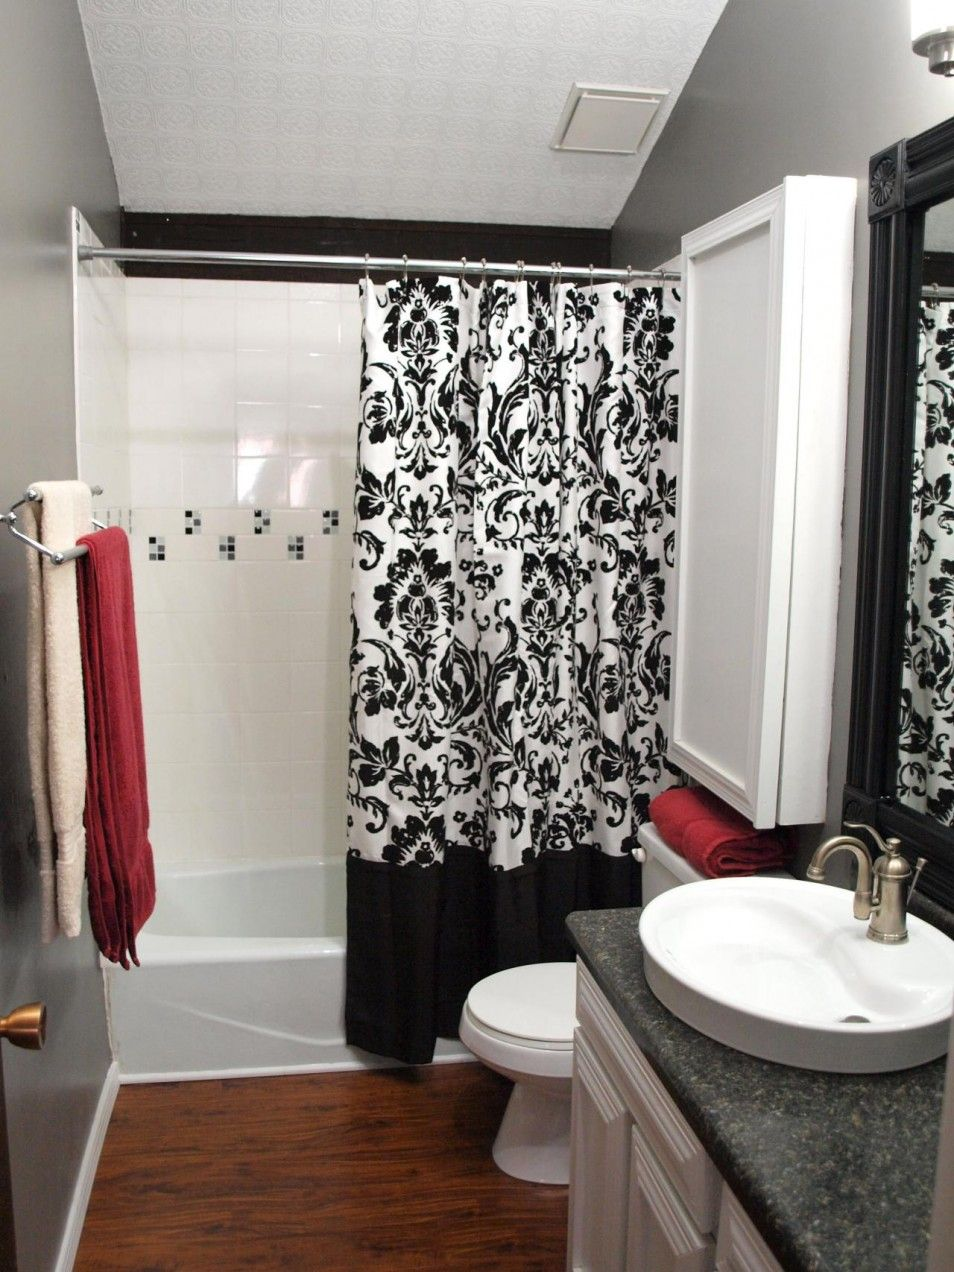 Bathroom colors themes decor ideas on pinterest shower - Cool Black And White Bathroom Design Ideas Black And White Is A Quite Popular Color Theme Nowadays You Can Easily Use It In A Bathroom To Make It Look